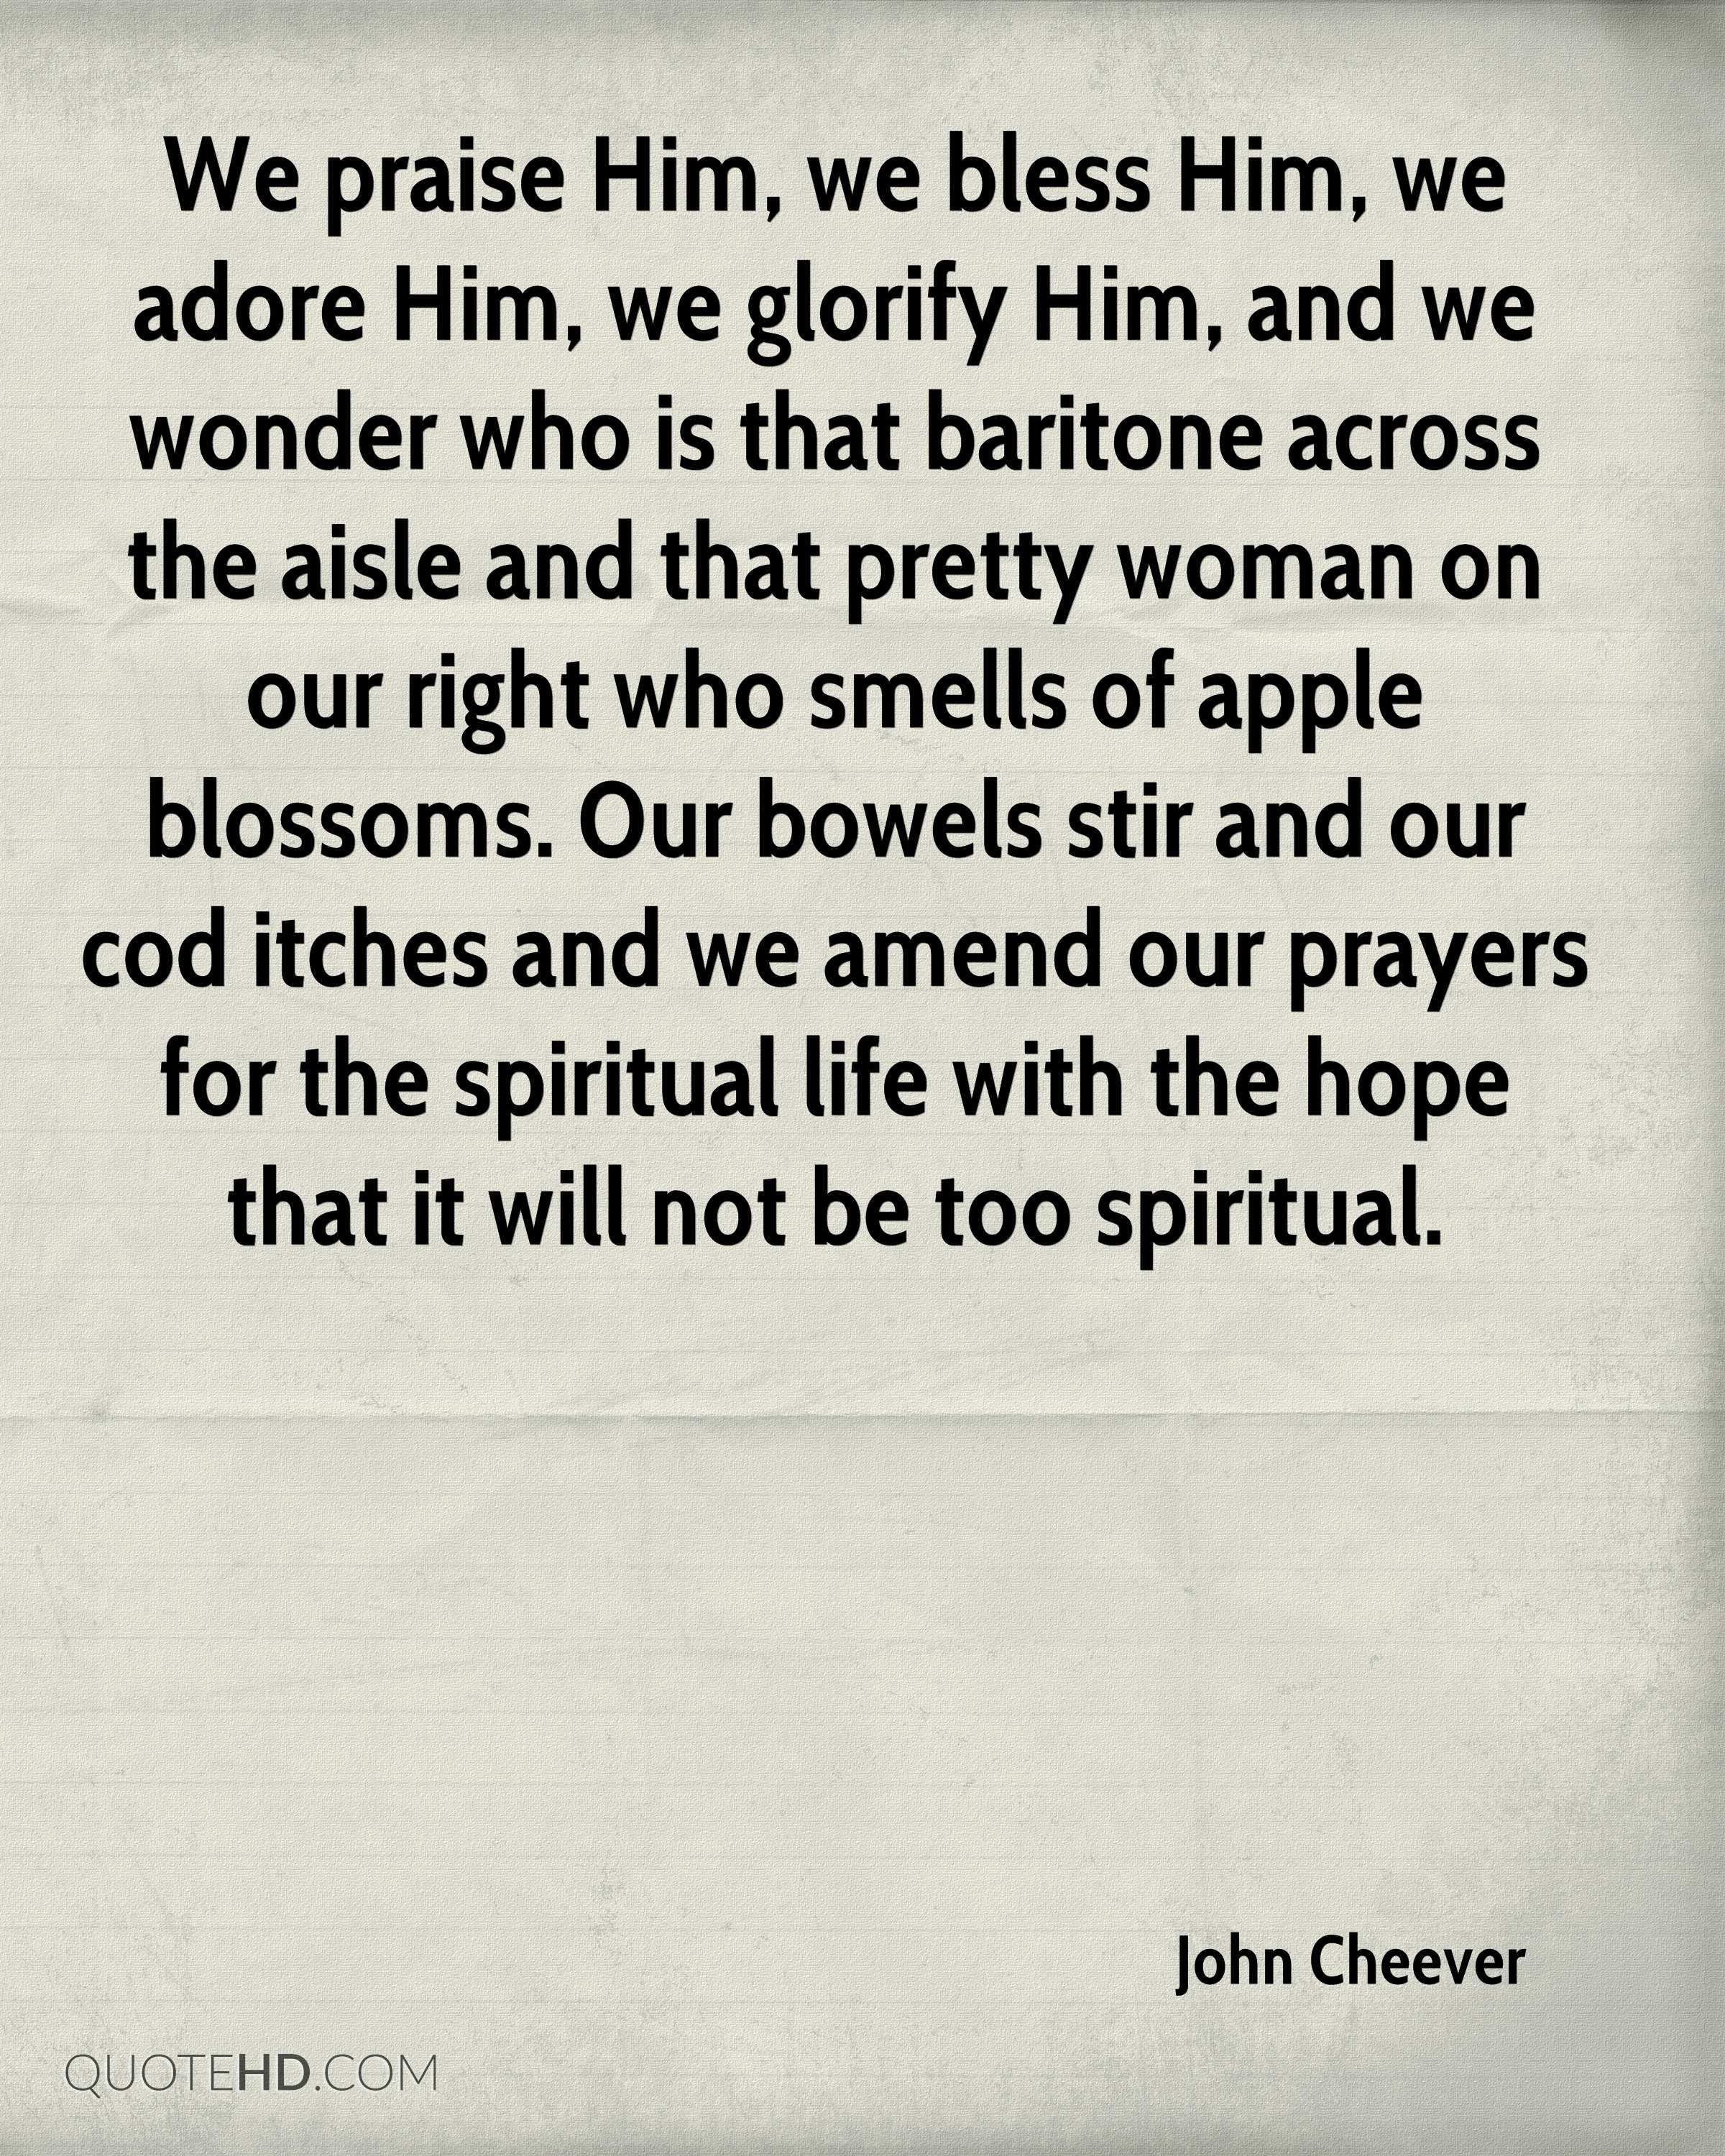 We praise Him, we bless Him, we adore Him, we glorify Him, and we wonder who is that baritone across the aisle and that pretty woman on our right who smells of apple blossoms. Our bowels stir and our cod itches and we amend our prayers for the spiritual life with the hope that it will not be too spiritual.